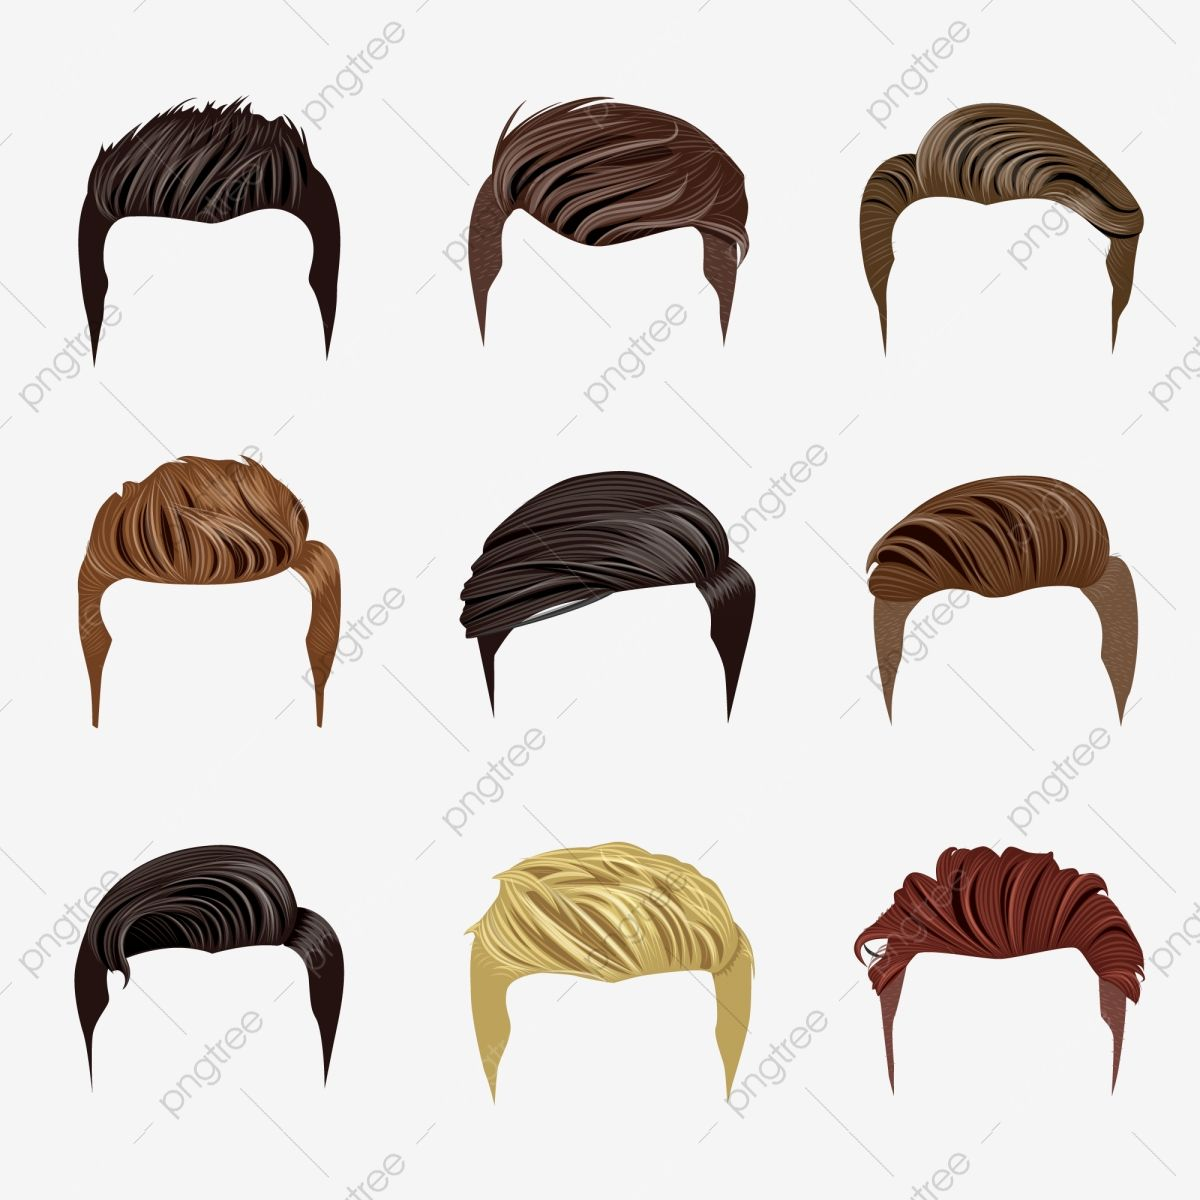 Set Of Men S Hairstyles Hair Clipart Hair Hairstyles Png And Vector With Transparent Background For Free Download In 2021 Hair Vector Hair Illustration Drawing Male Hair